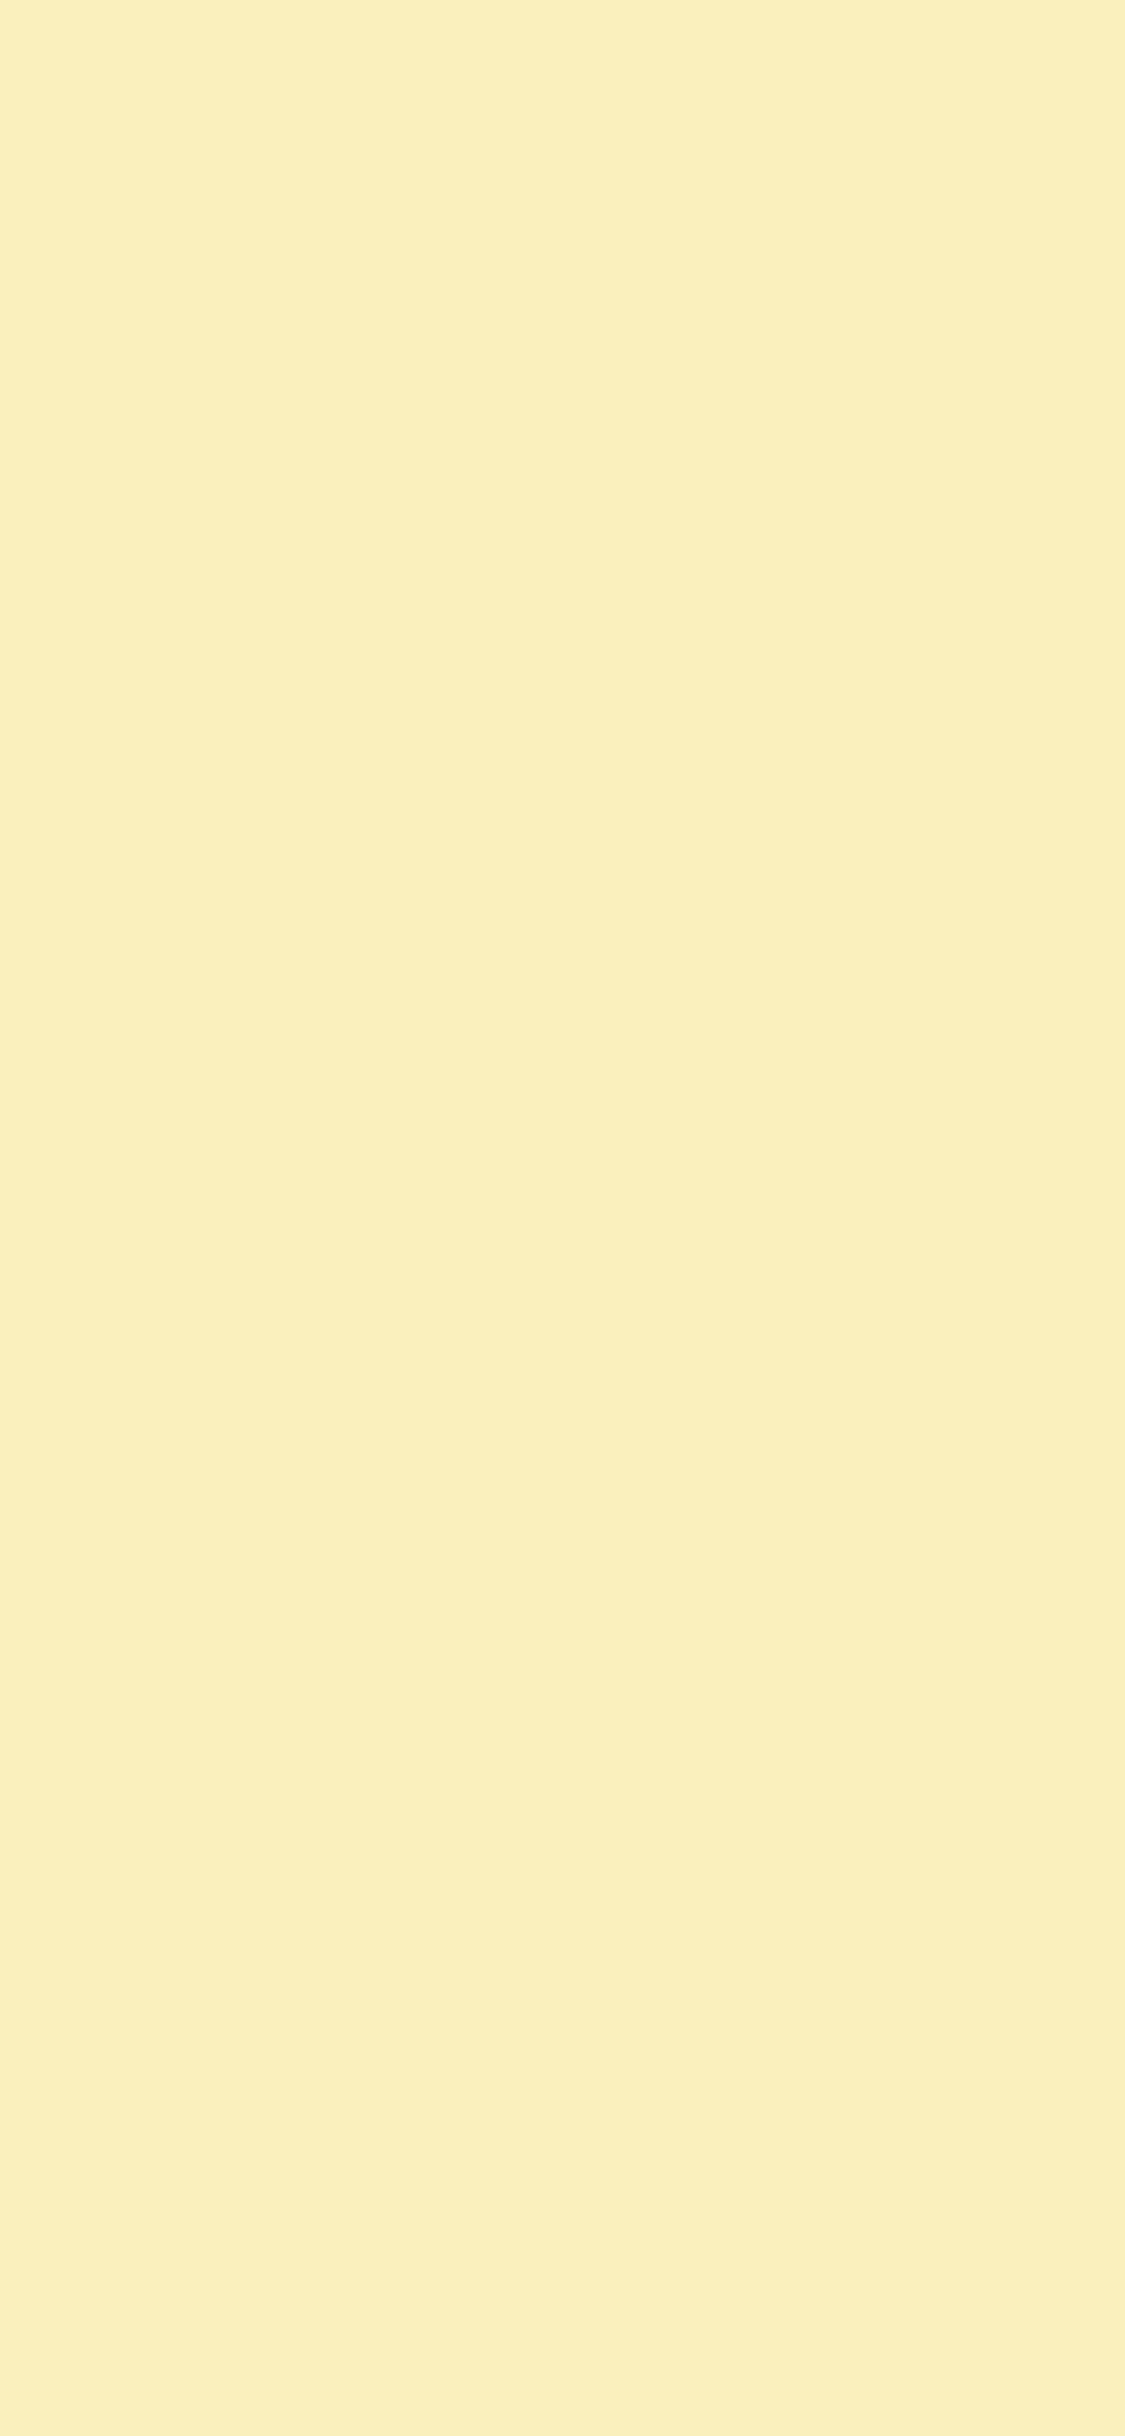 1125x2436 Blond Solid Color Background